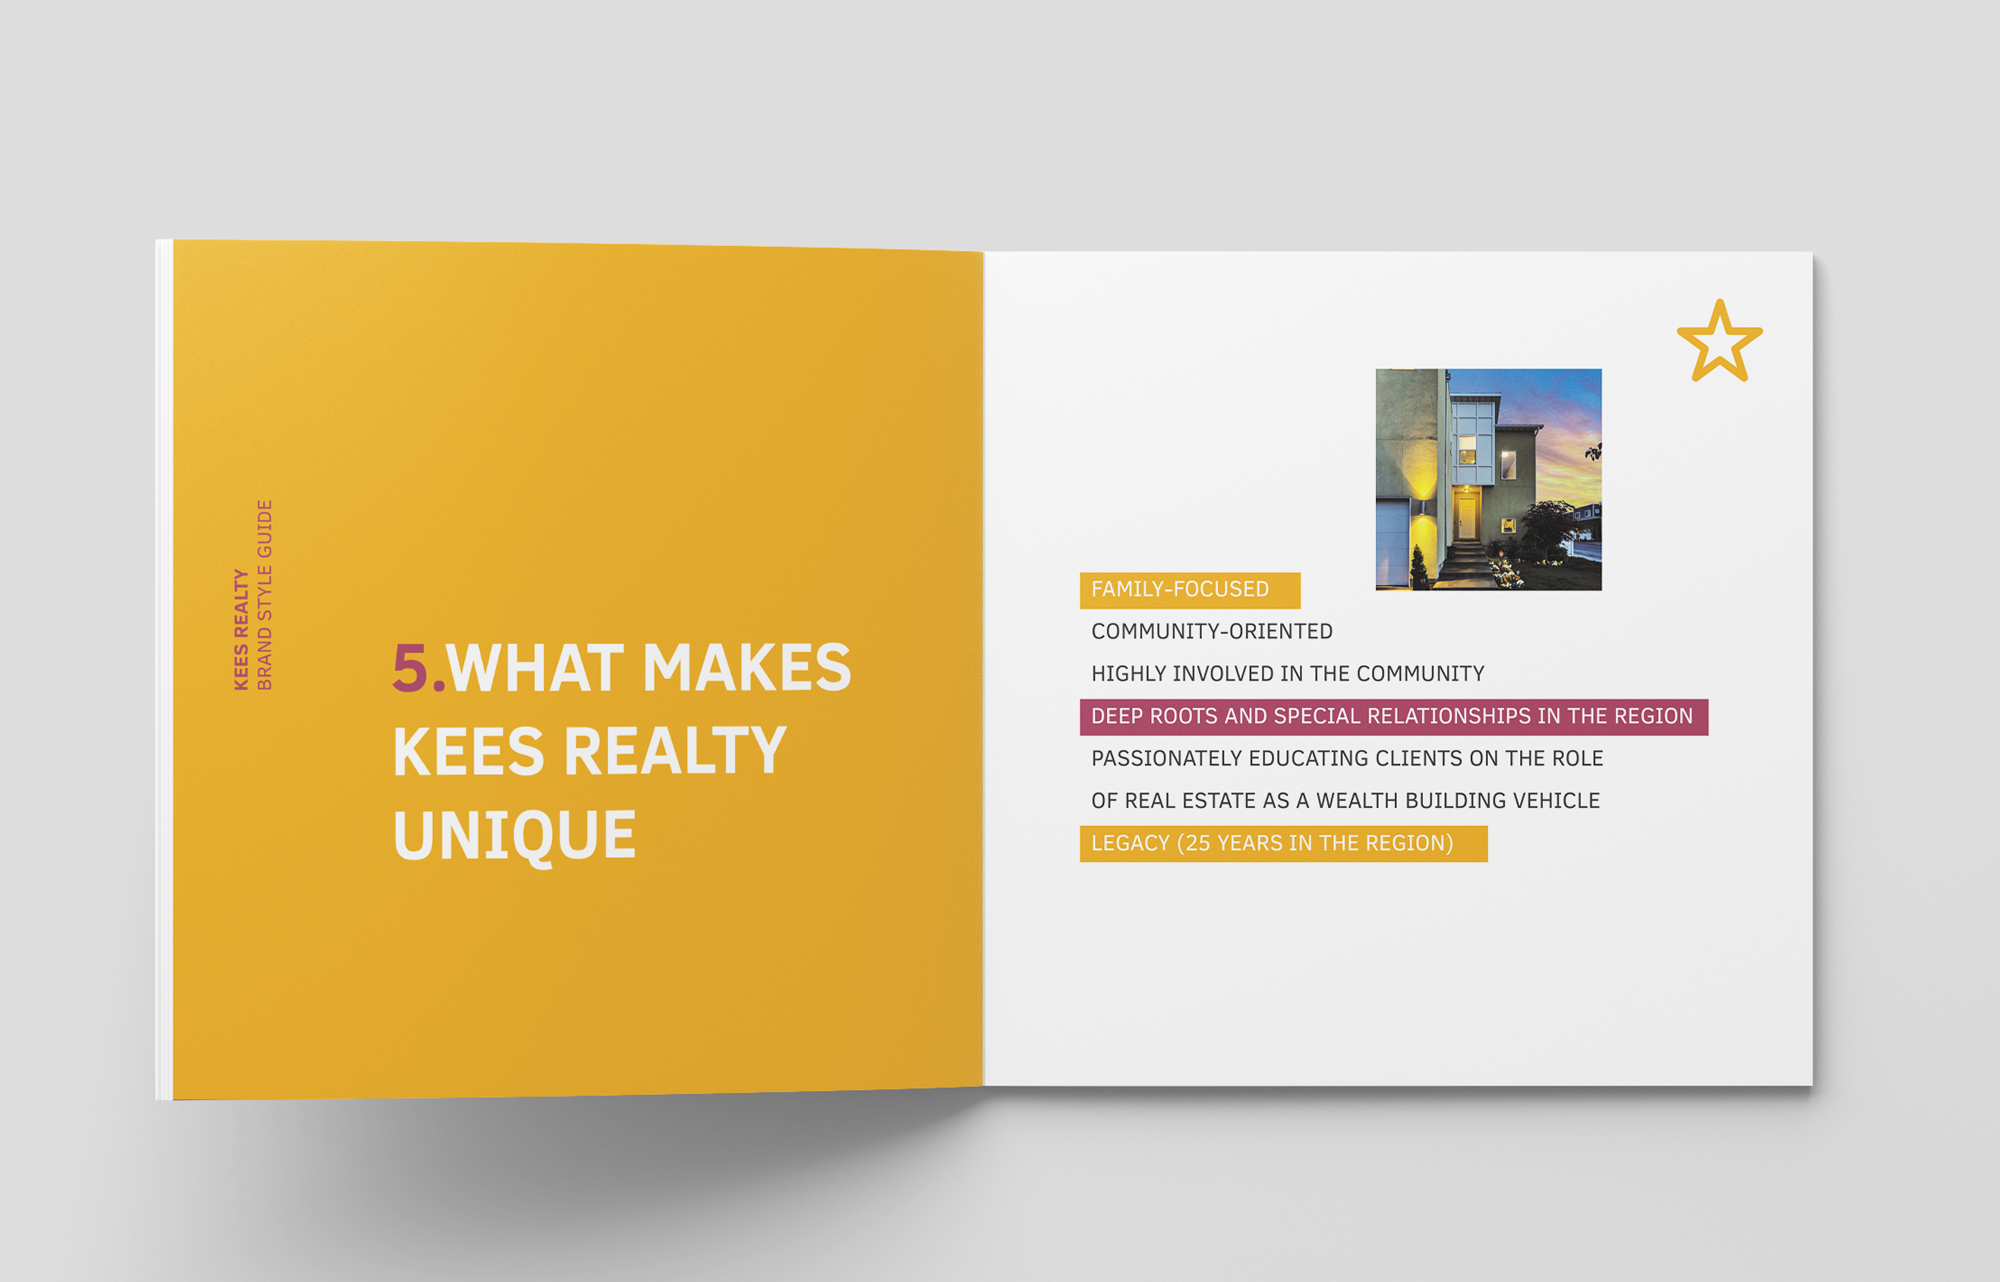 Kees-Realty_Brand-Style-Guide_05.jpg